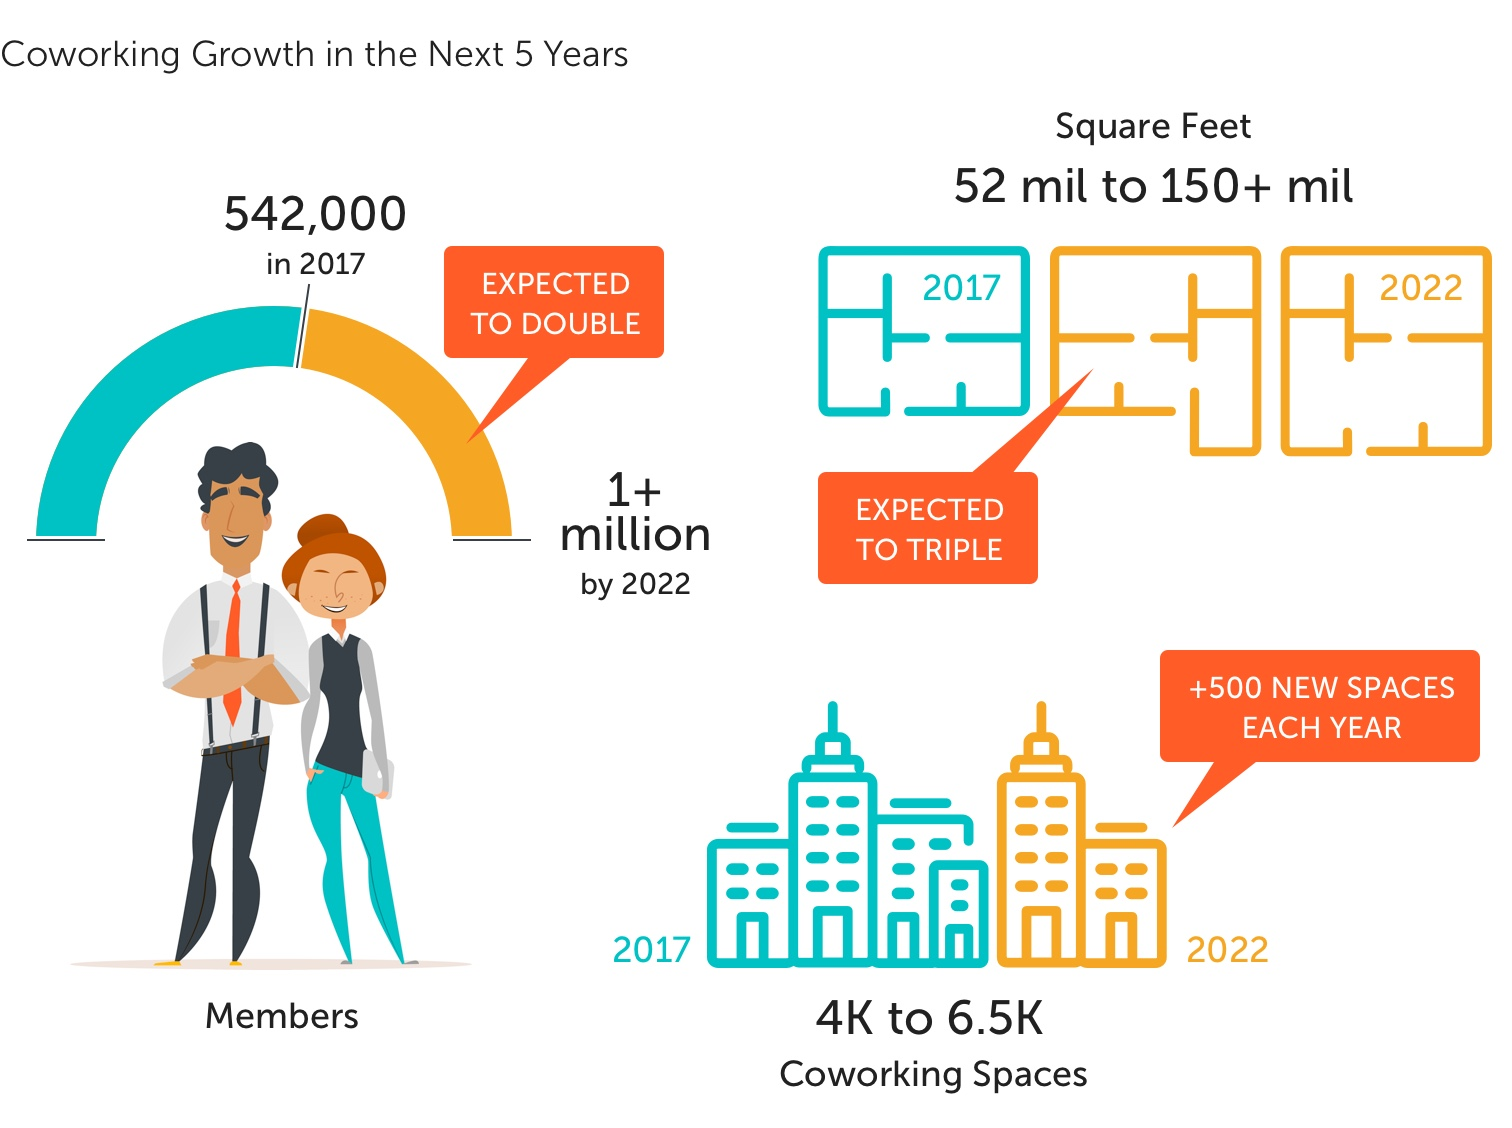 Statistics show how coworking together has appealed to the millennial generation.